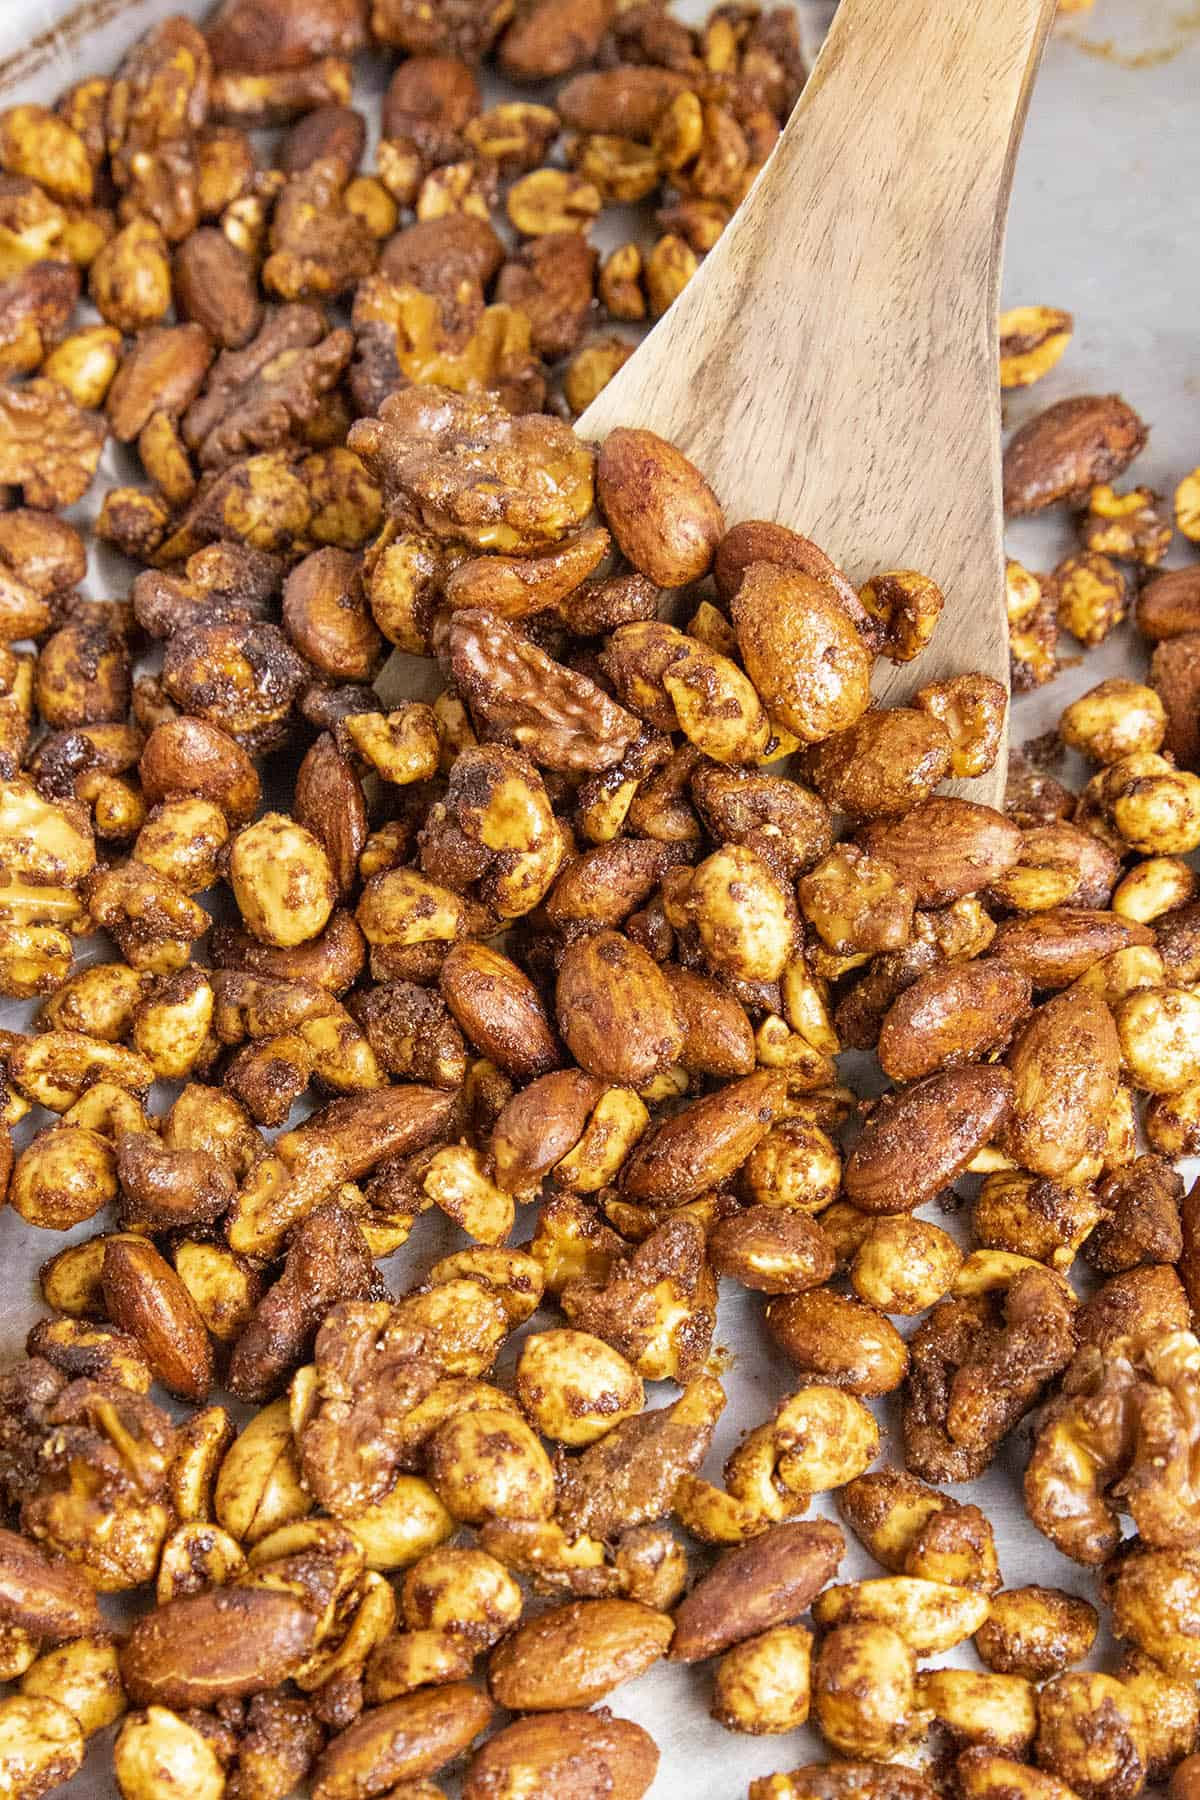 Spiced Nuts in a baking dish, ready to enjoy